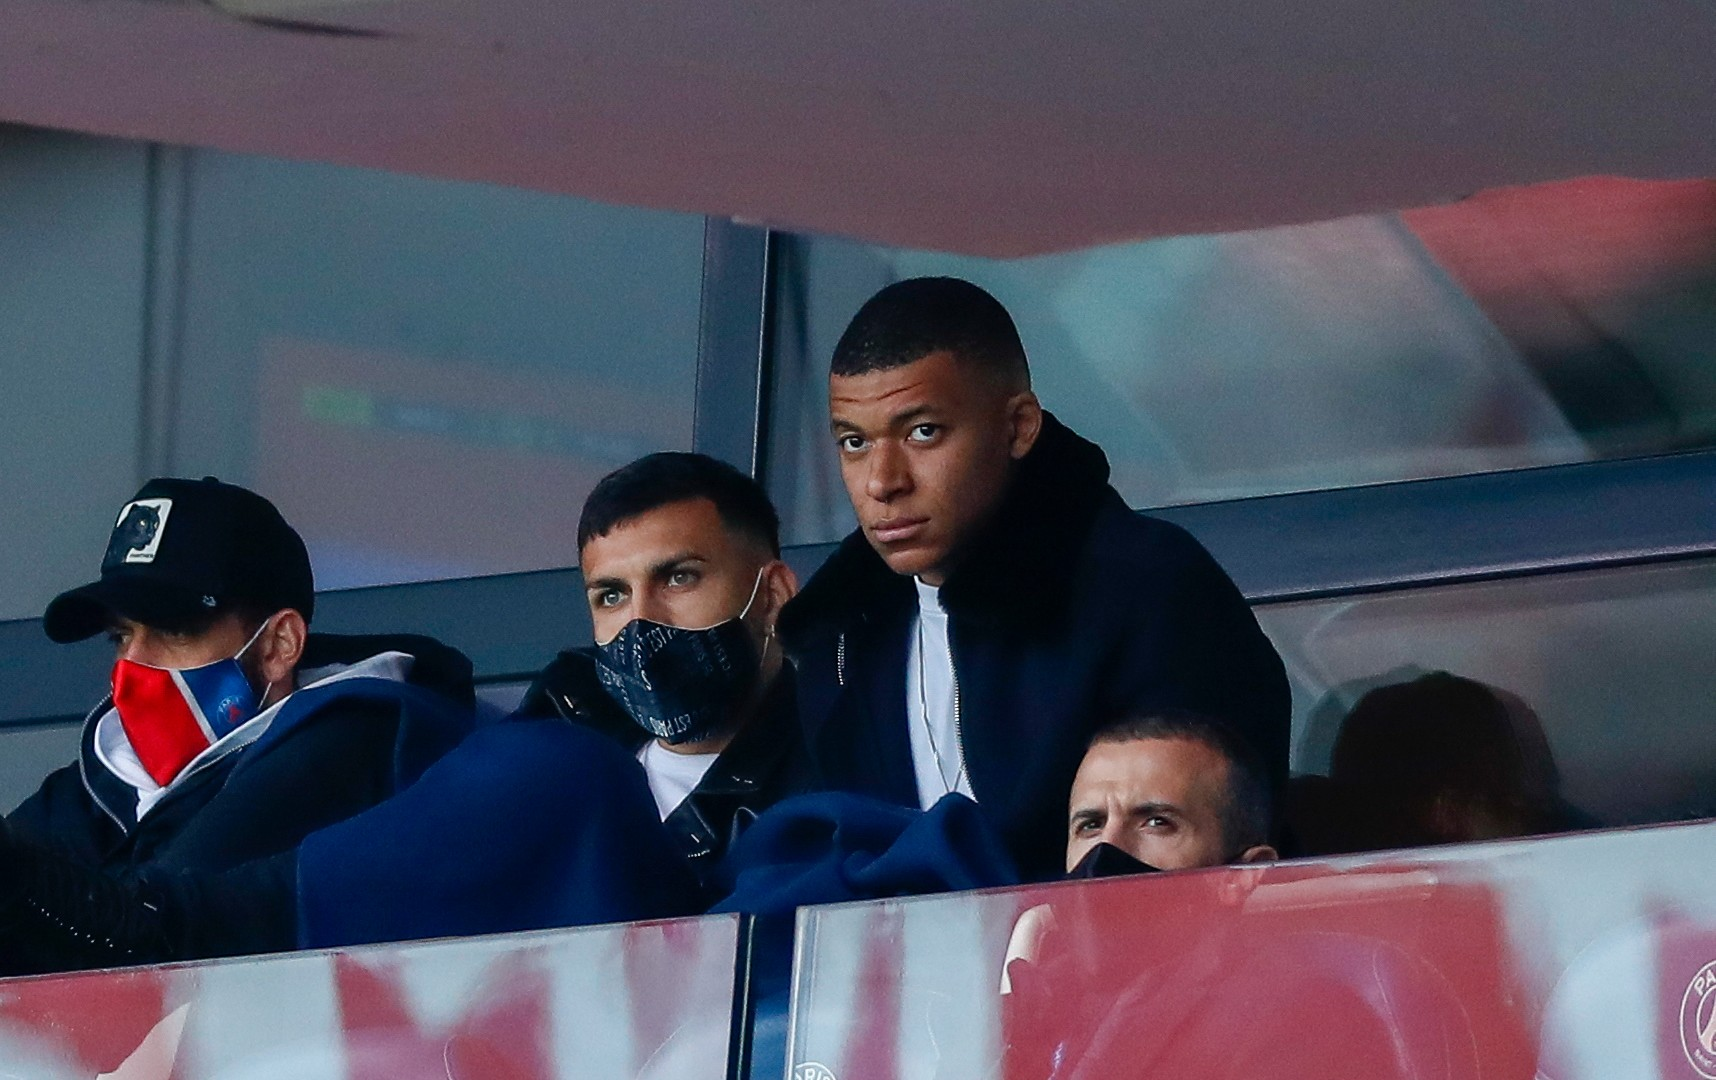 PSG yet to make decision over Mbappe as Pochettino calls for bravery against Man City